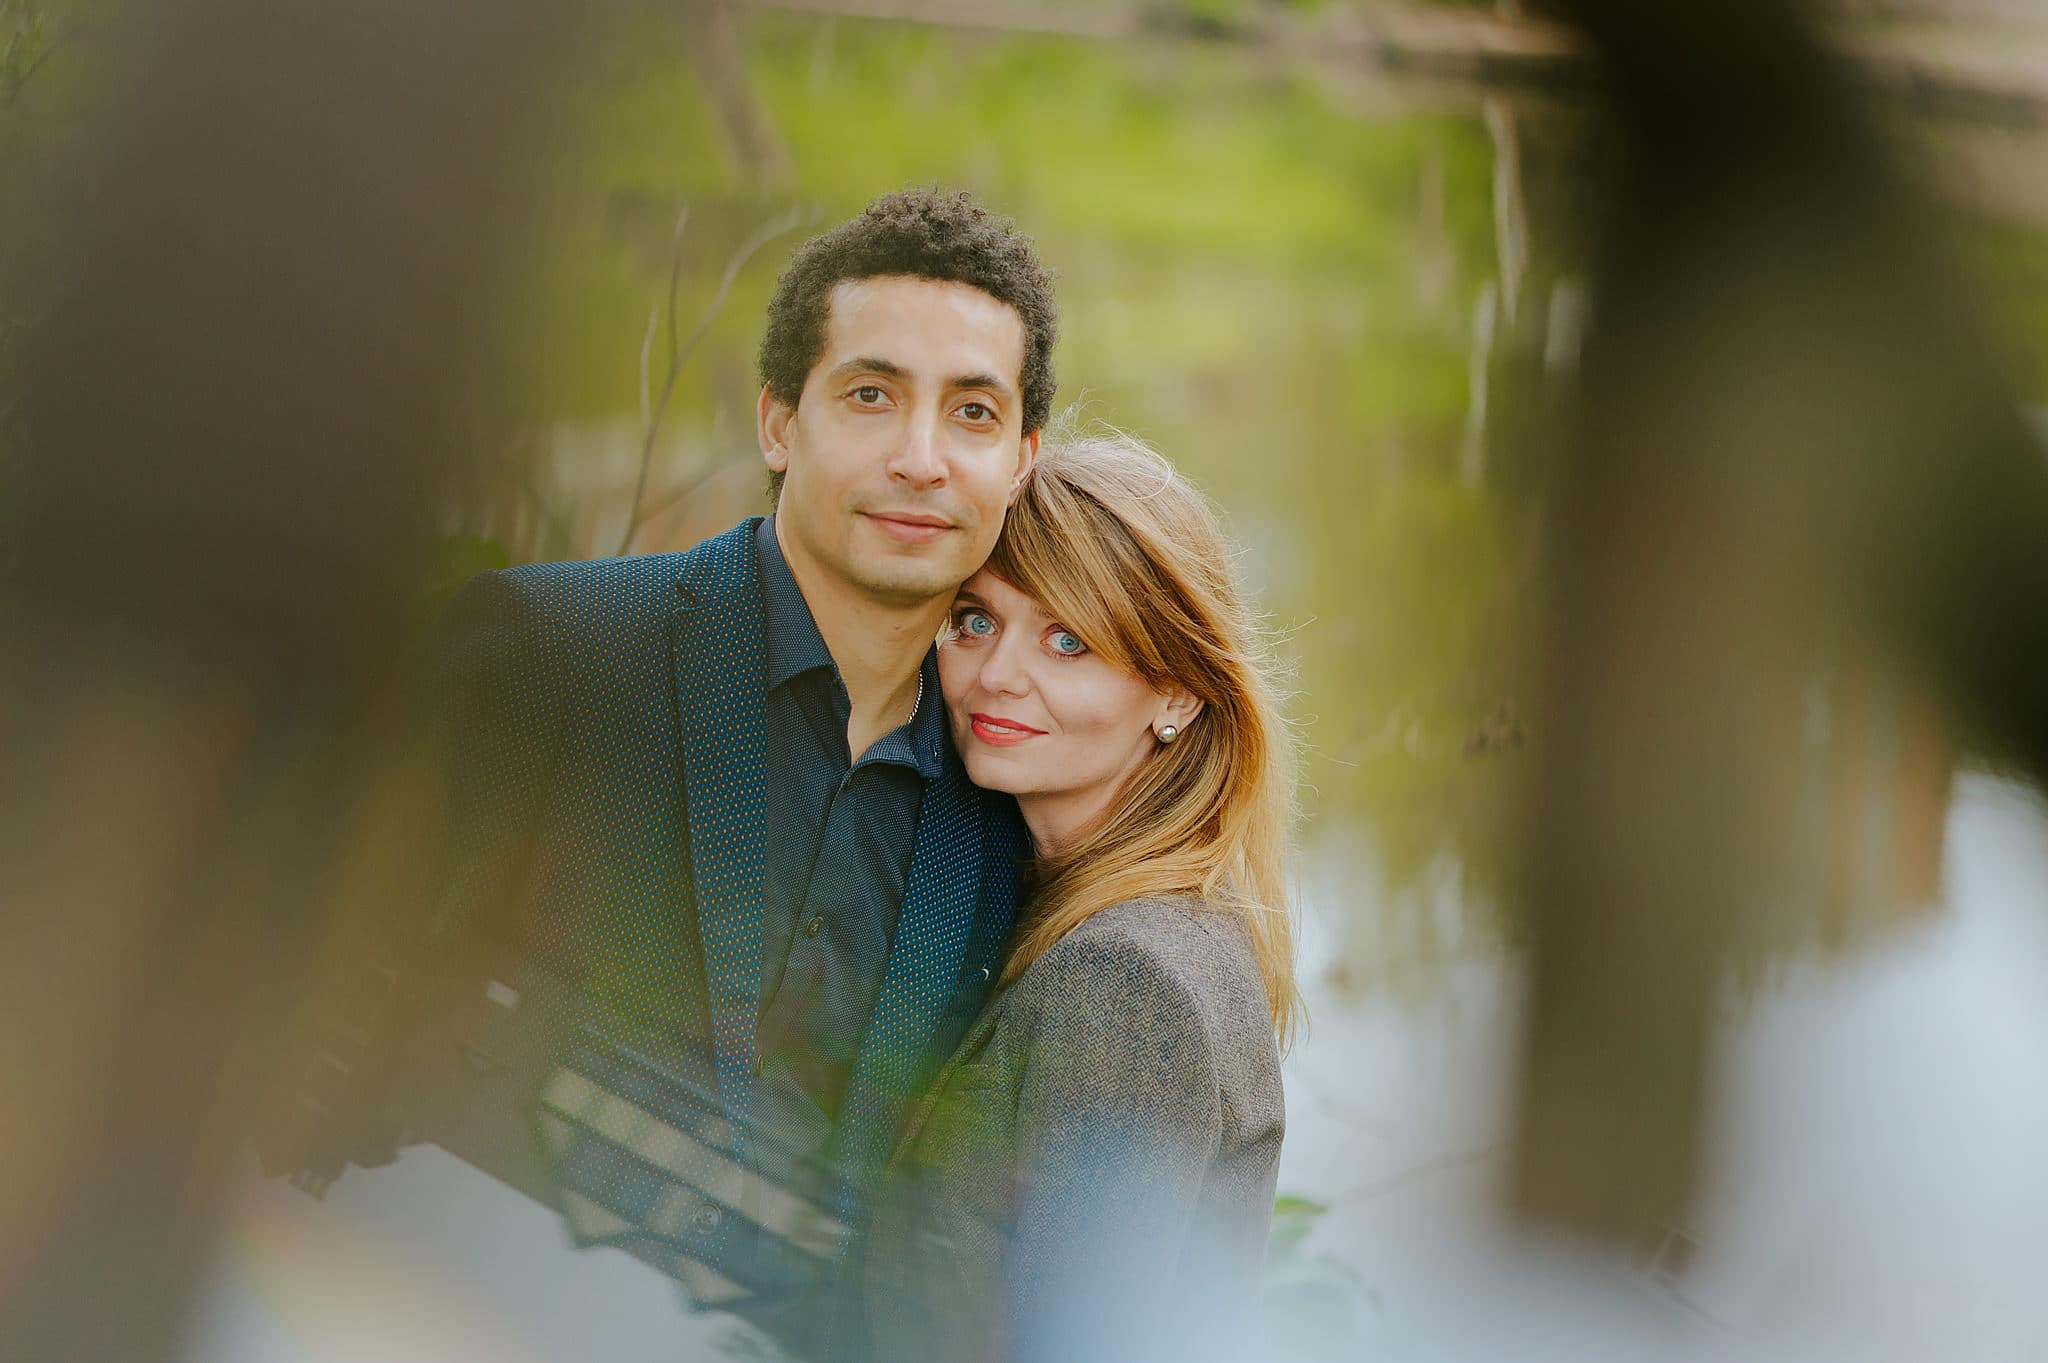 engagement photography worcester 8 - Chris + Malgosia | Engagement photography Worcester